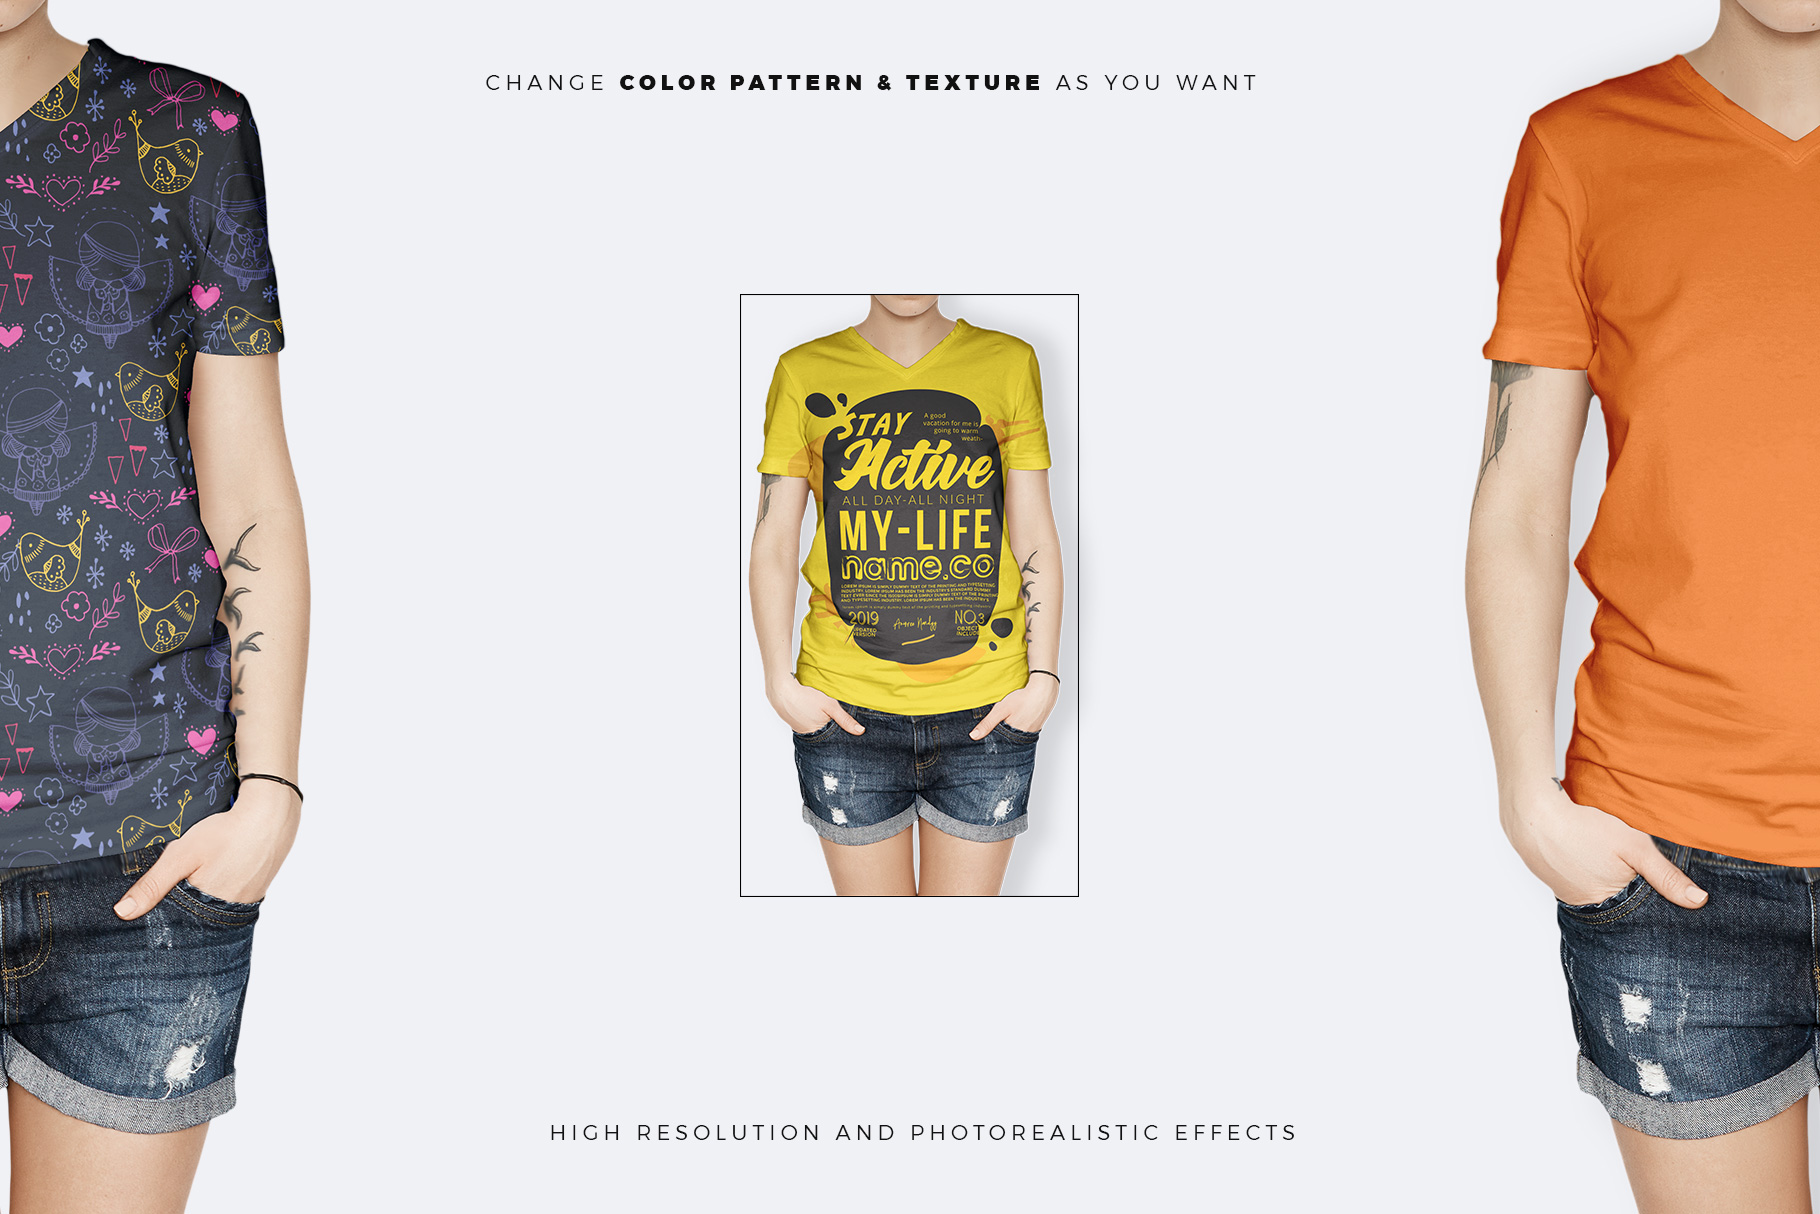 female t-shirt mock up color, texture and logo change easily option presented